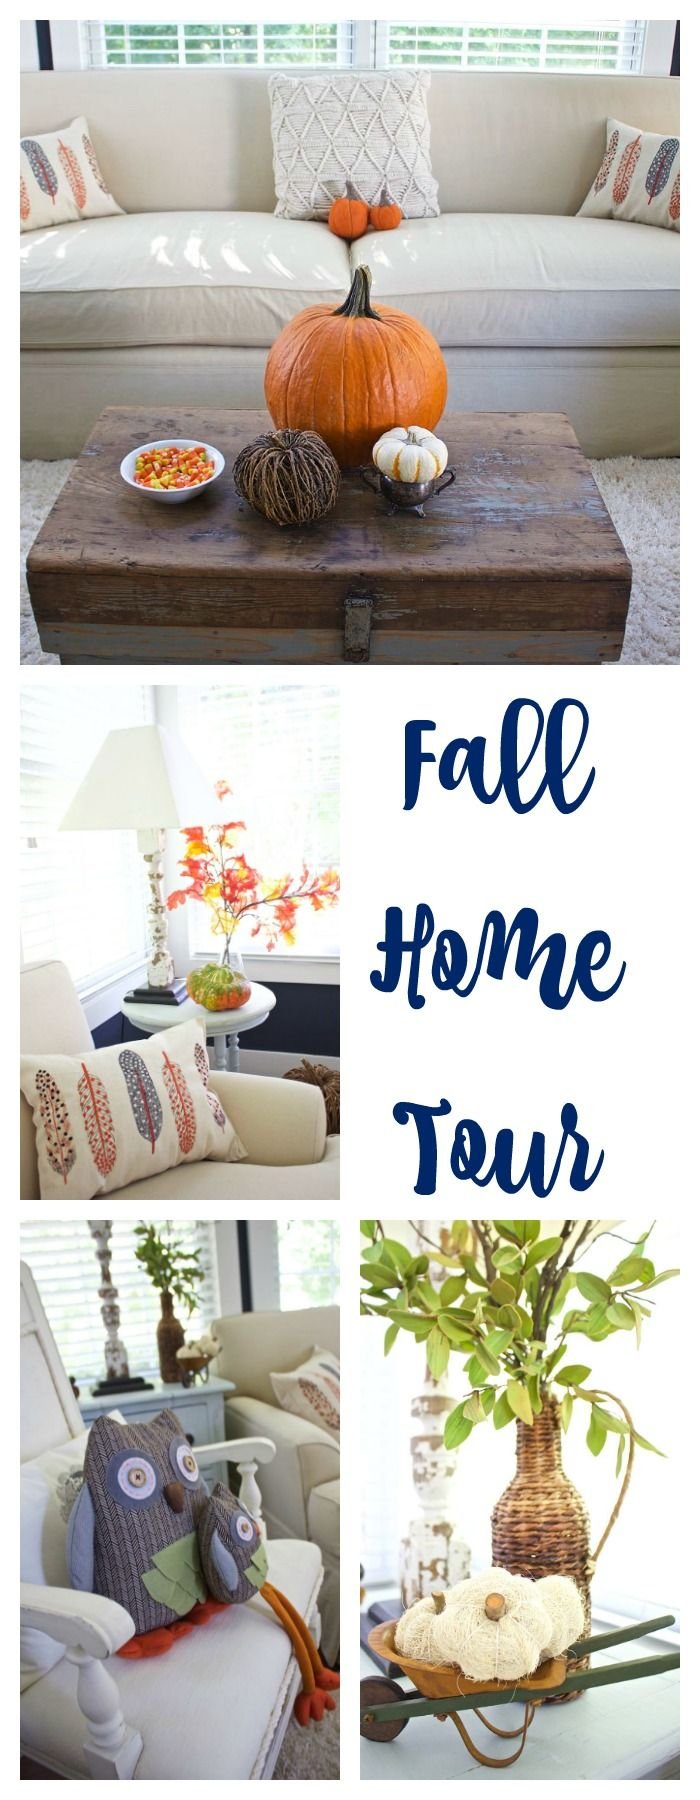 903 best Fall Decorating images on Pinterest | Decor crafts ...